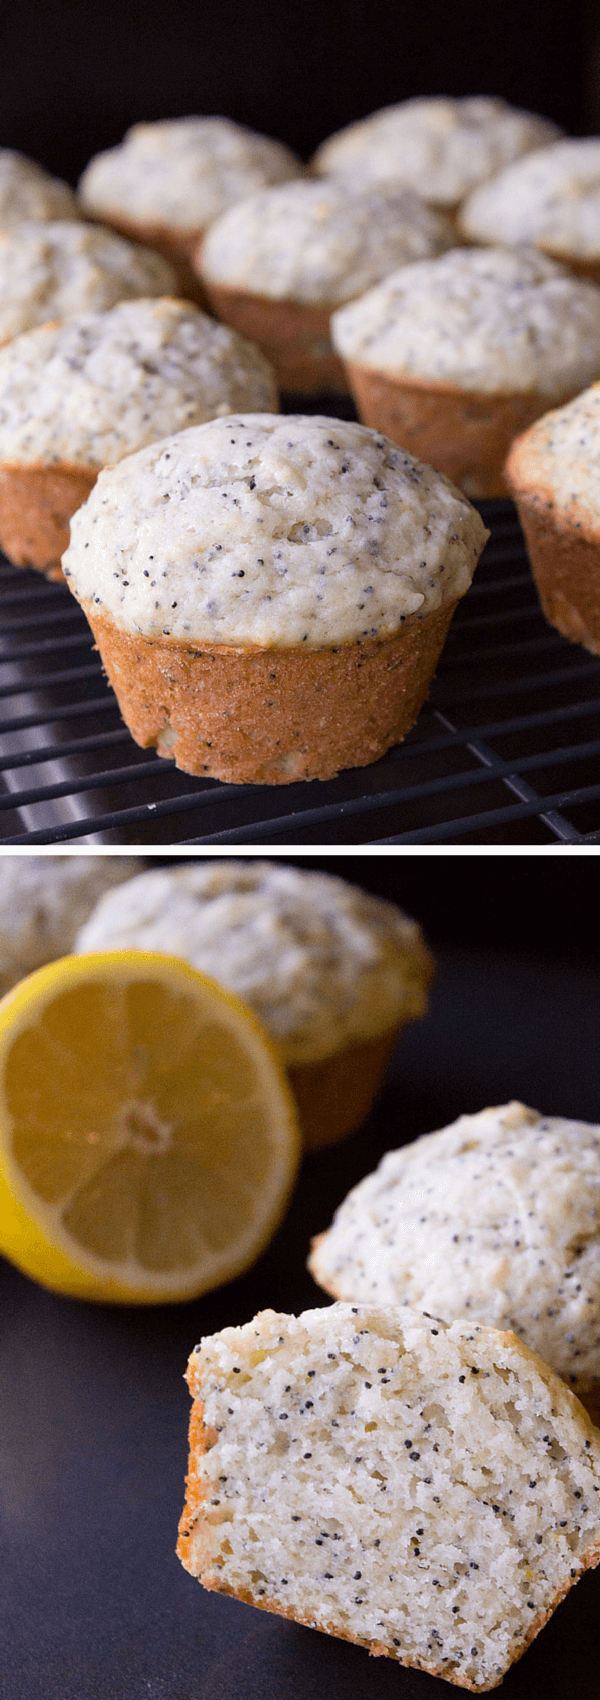 Lemon Poppy Seed Muffins. Super moist, fluffy, buttery & with that perfect lemon flavor - this simple muffin recipe is perfect for summer! www.justsotasty.com